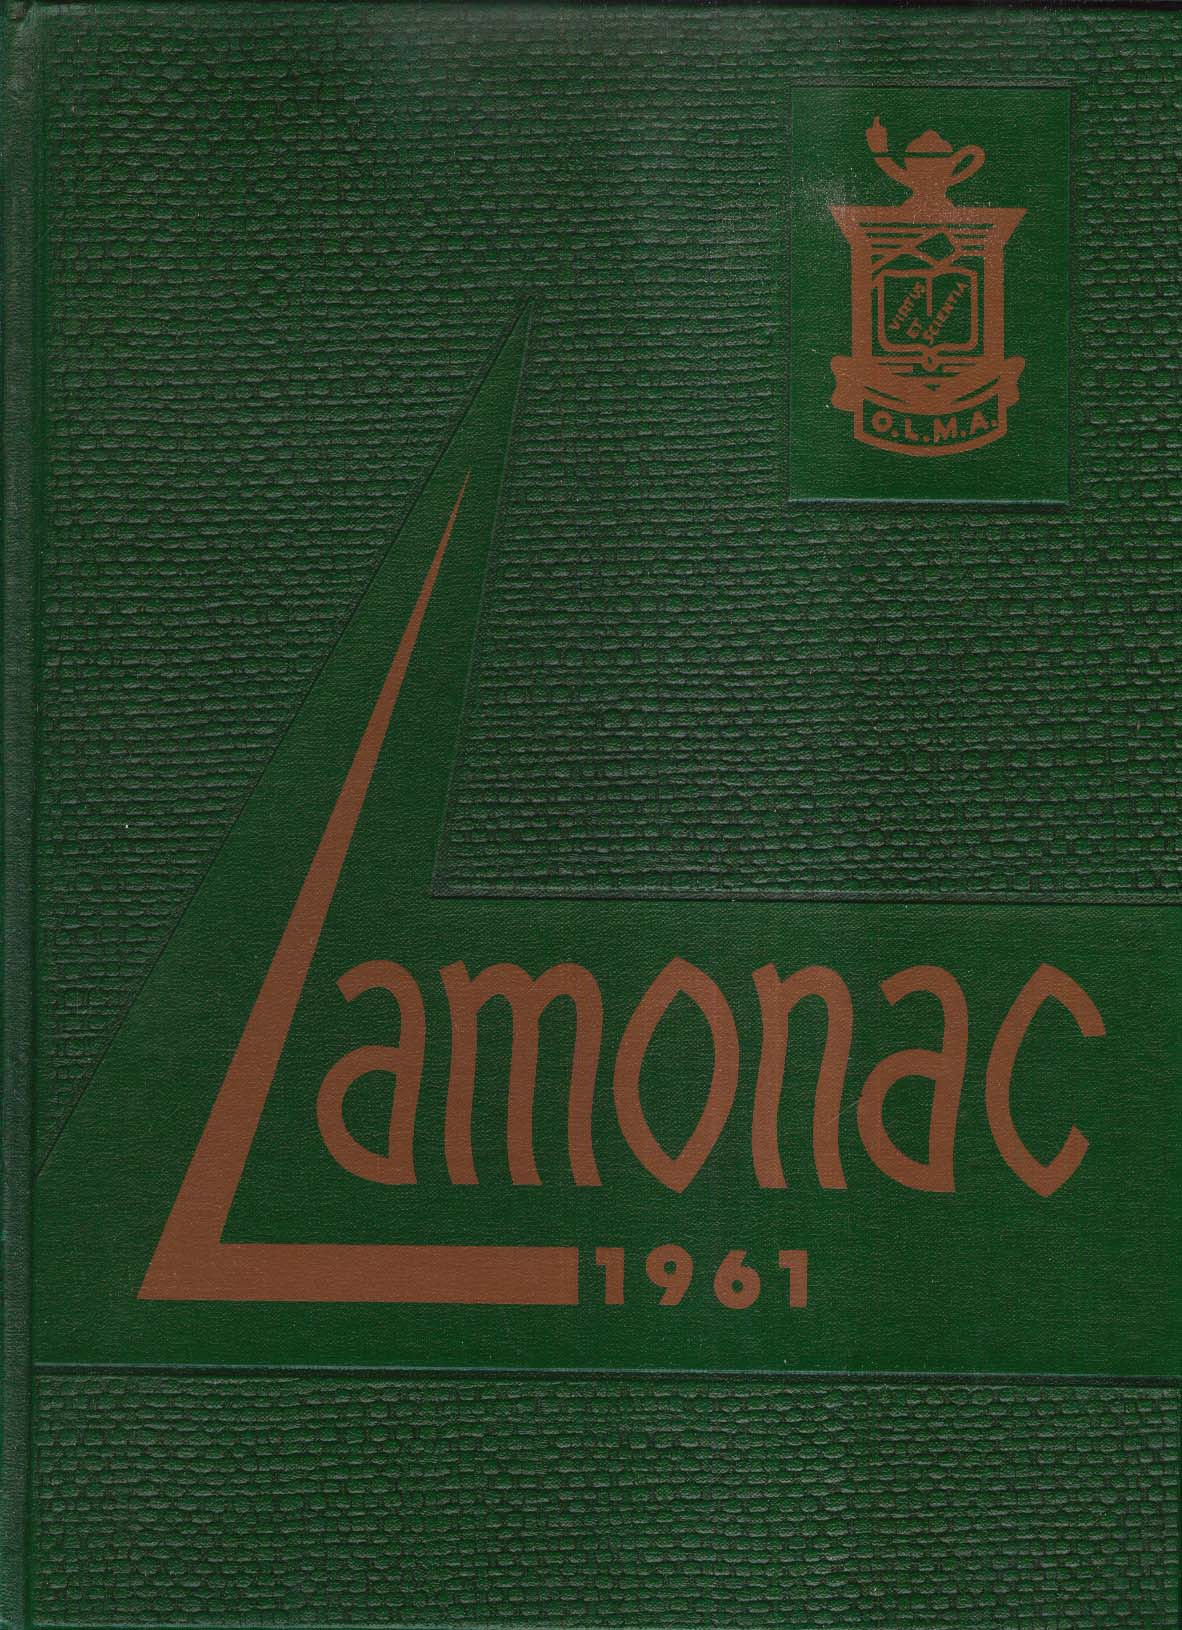 Image for Lamonac 1961 Lady of Monadnock Academy Yearbook Jaffrey New Hampshire NH